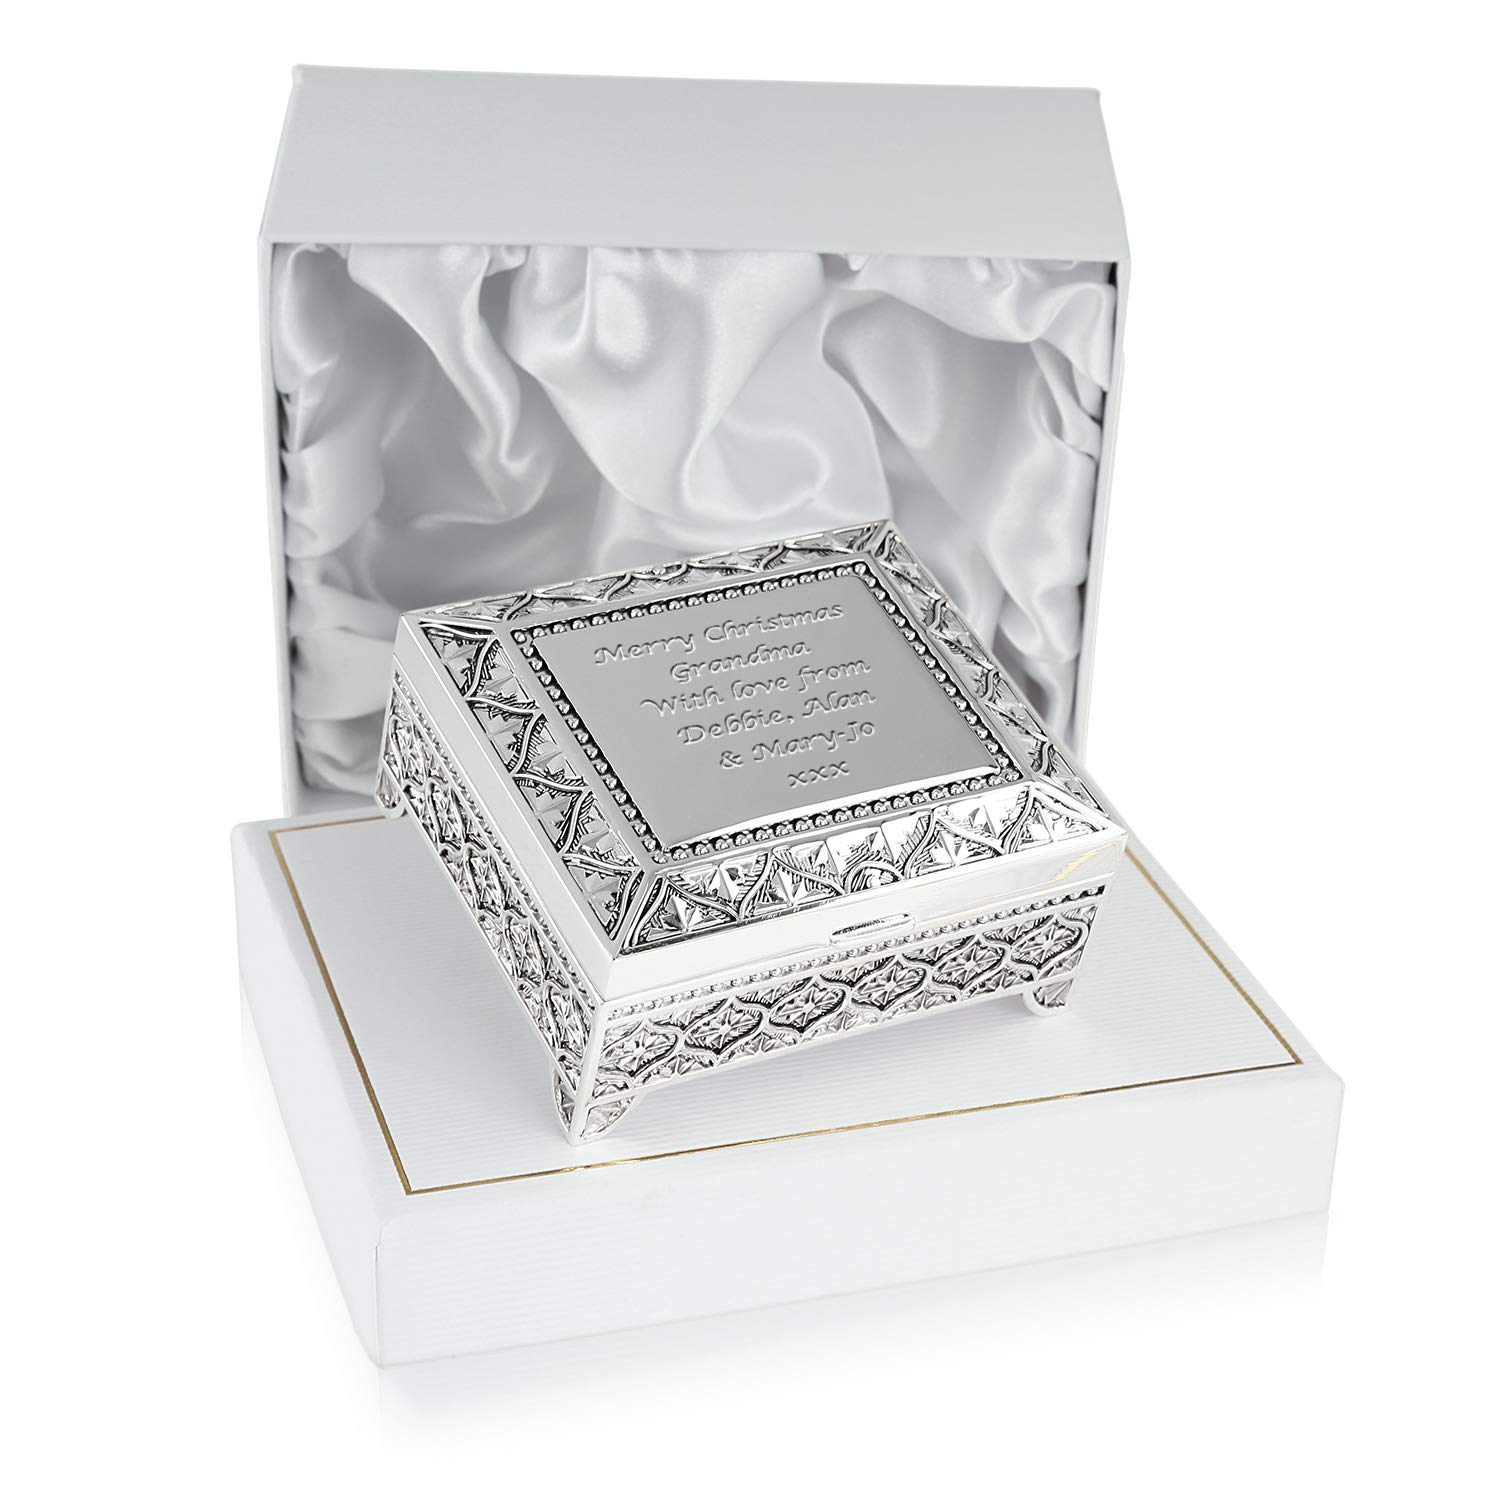 Grandma Christmas Gift, Engraved Silver Plated Trinket Box in a Satin Lined Presentation Box, Grandma Gift Ideas The Great Gifts Company